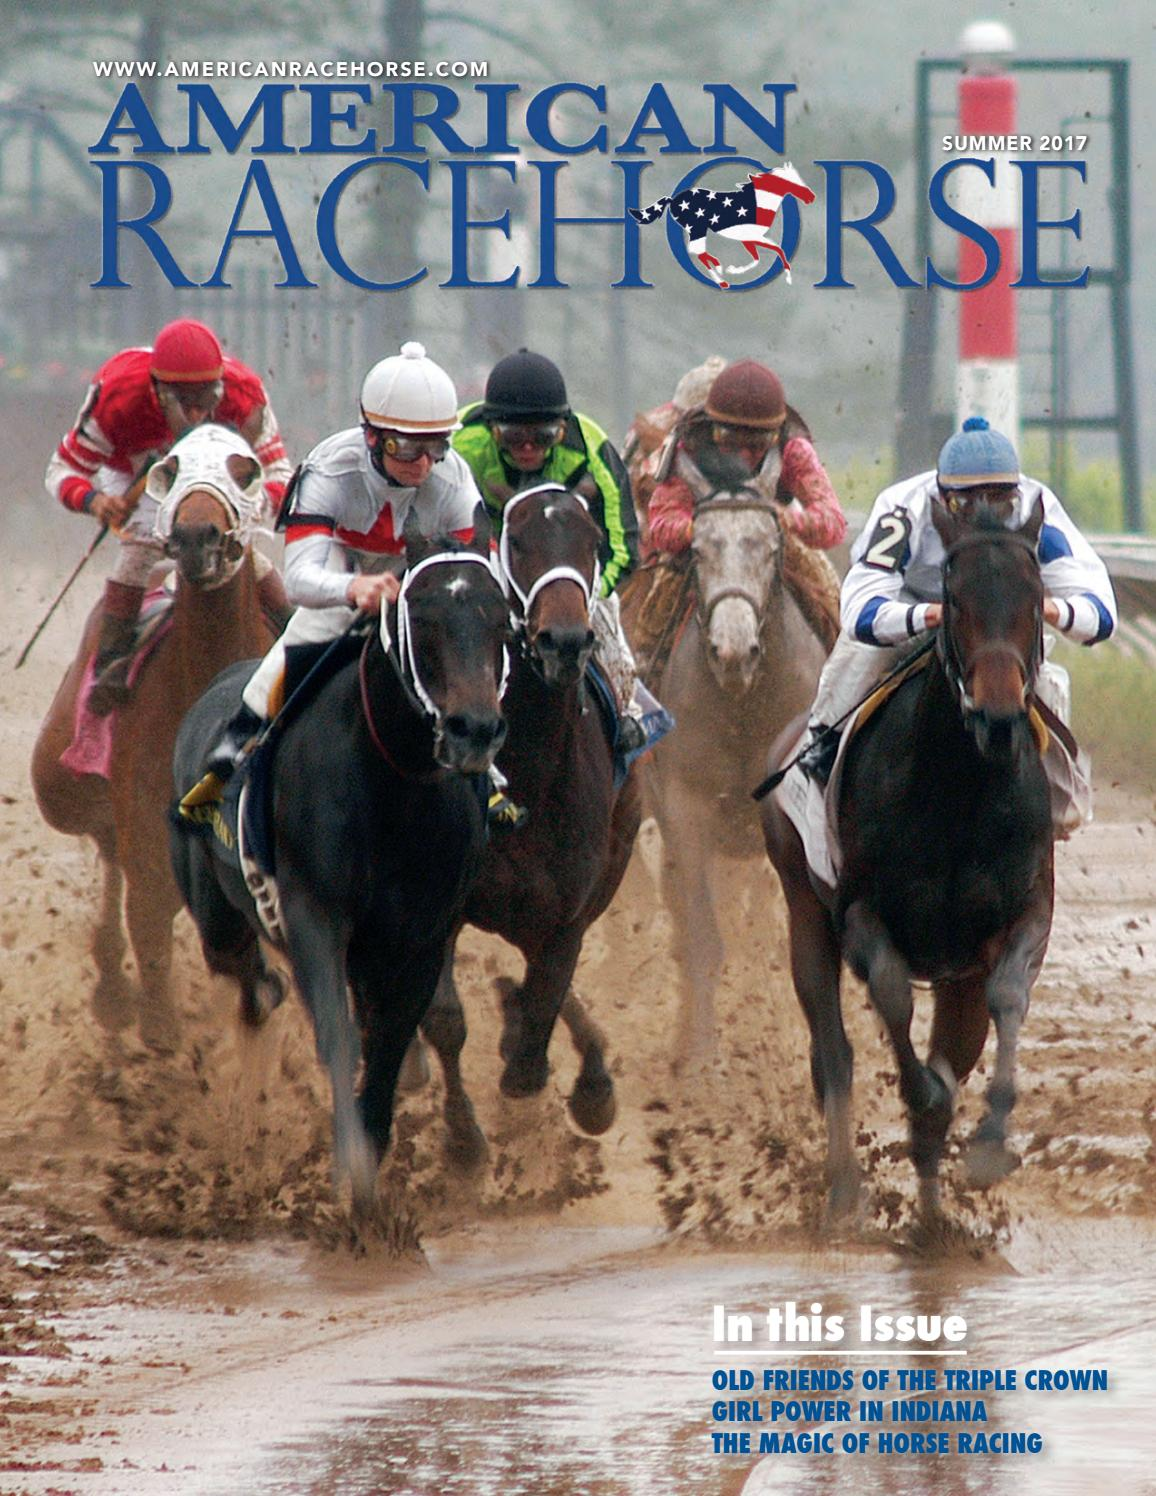 a1bc9e82c4a American Racehorse - Summer 2017 by American Racehorse (formerly Southern  Racehorse) - issuu